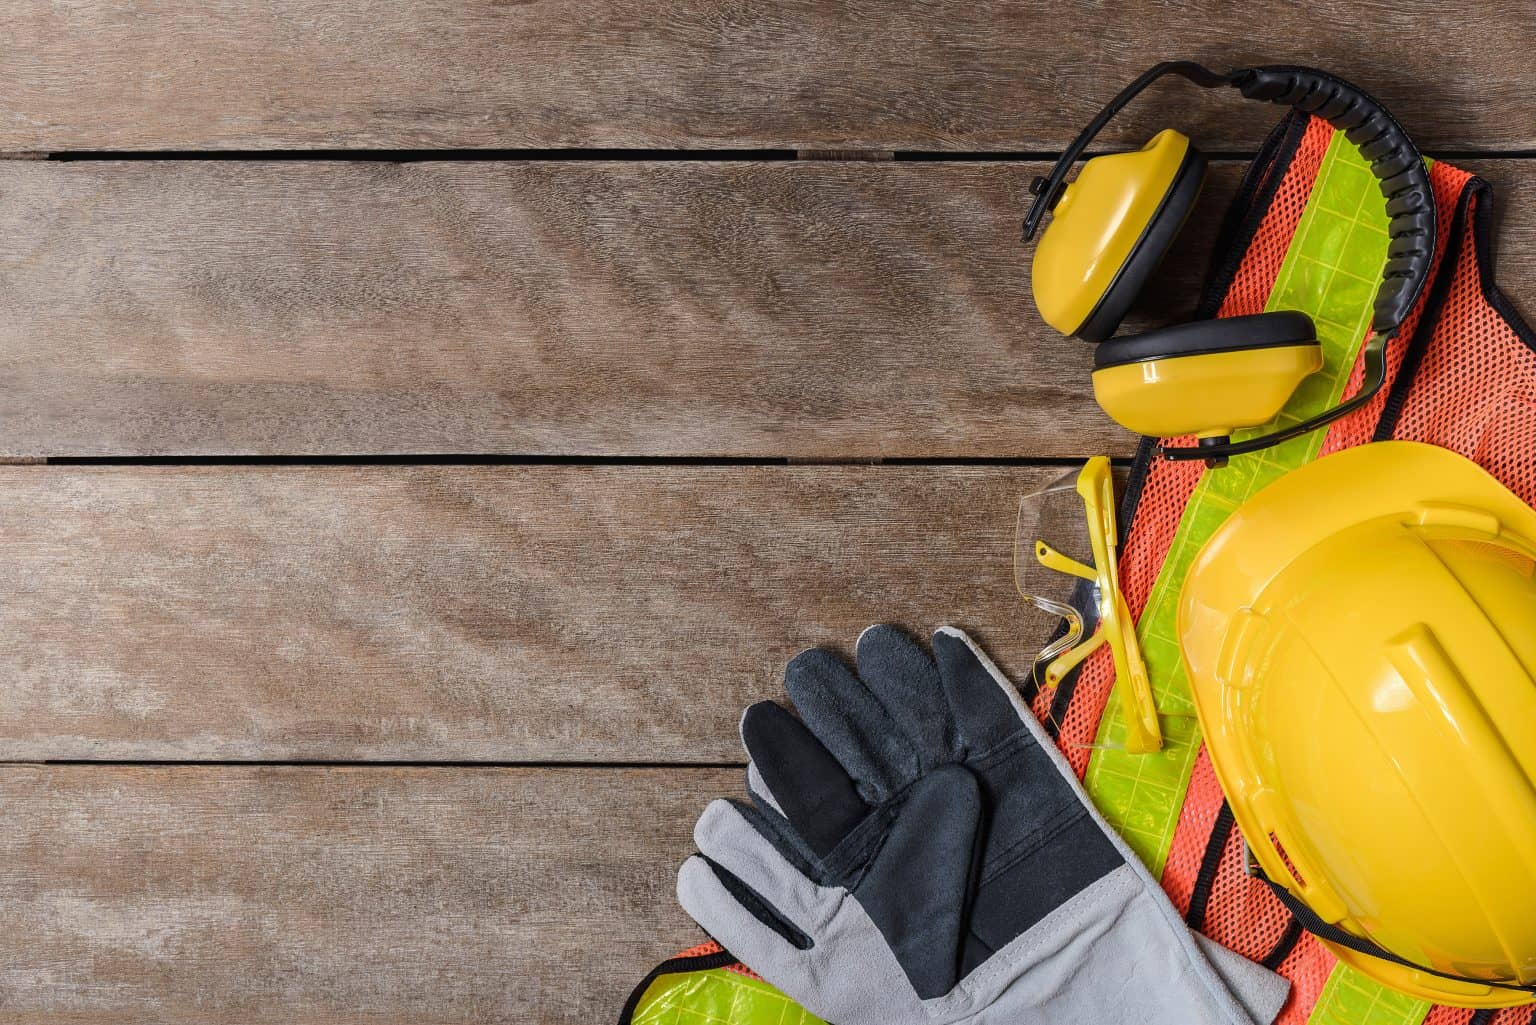 attwood marshall lawyers help workers that have sustained a work-related injury or illness